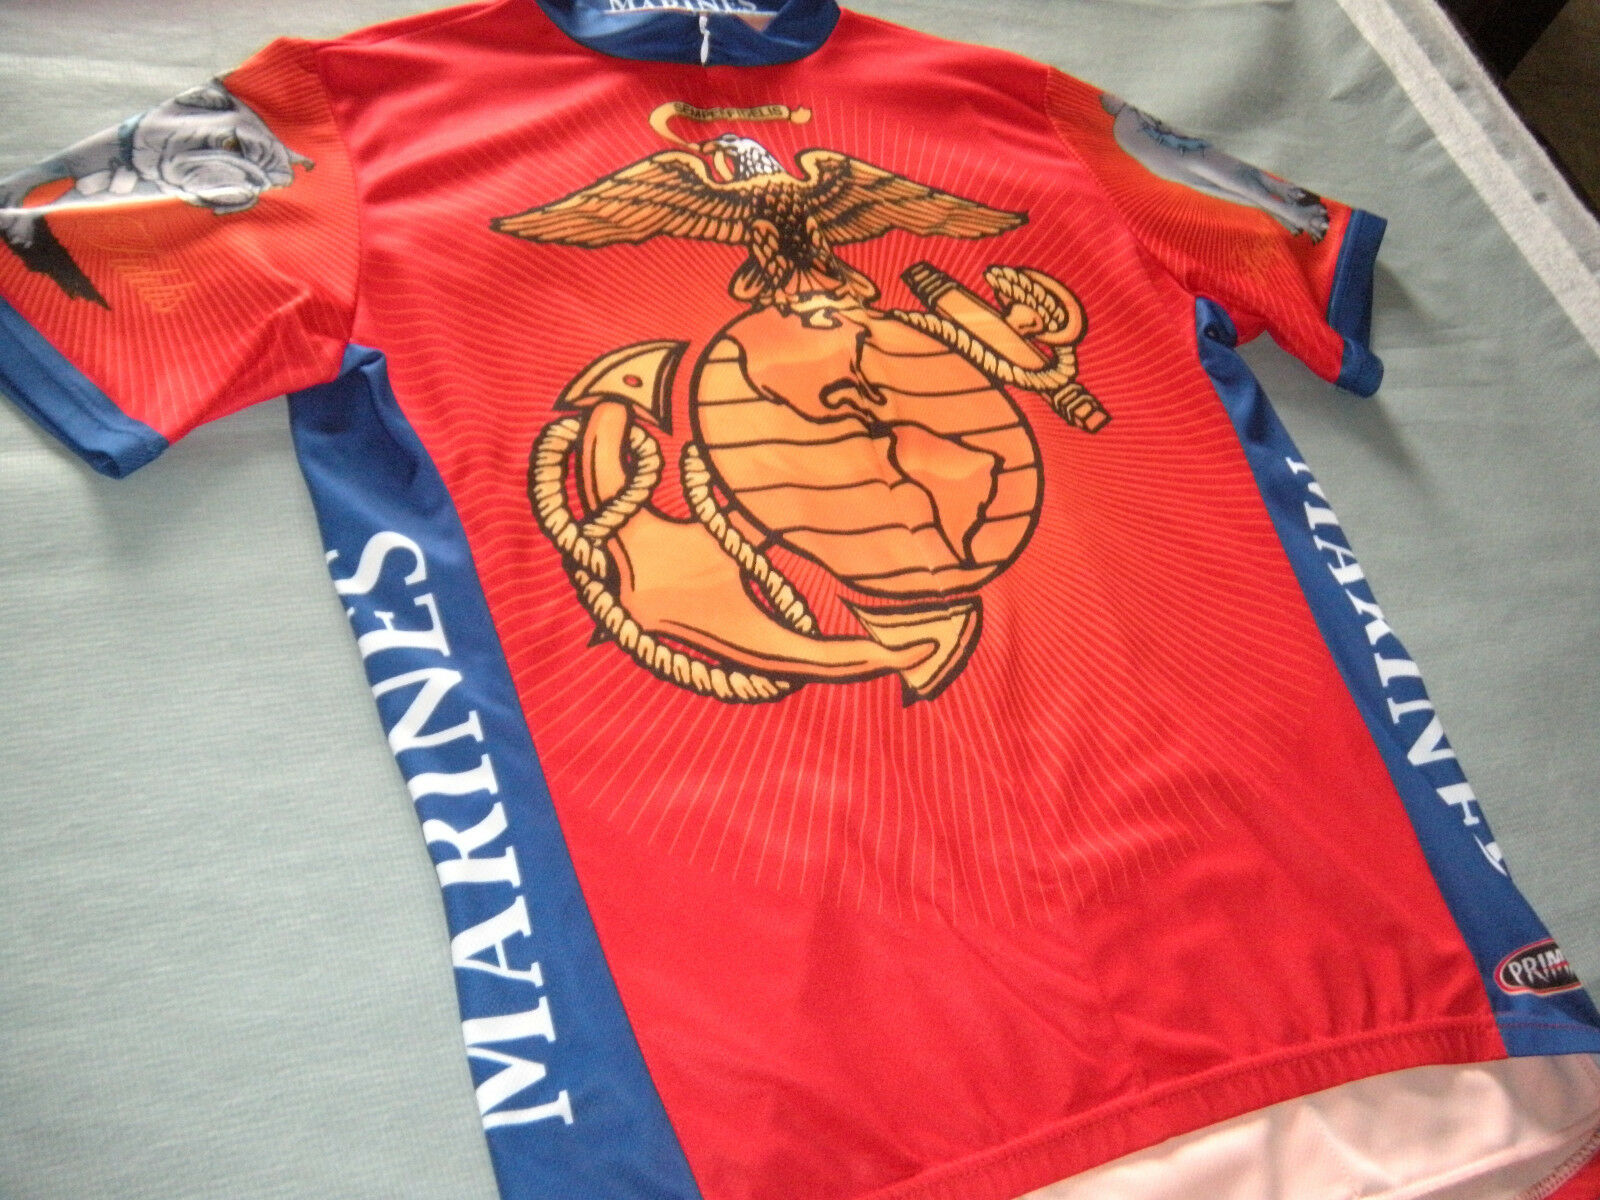 Primal Wear UNITED STATES MARINES Semperfidelis Cycling Jersey Adult XL